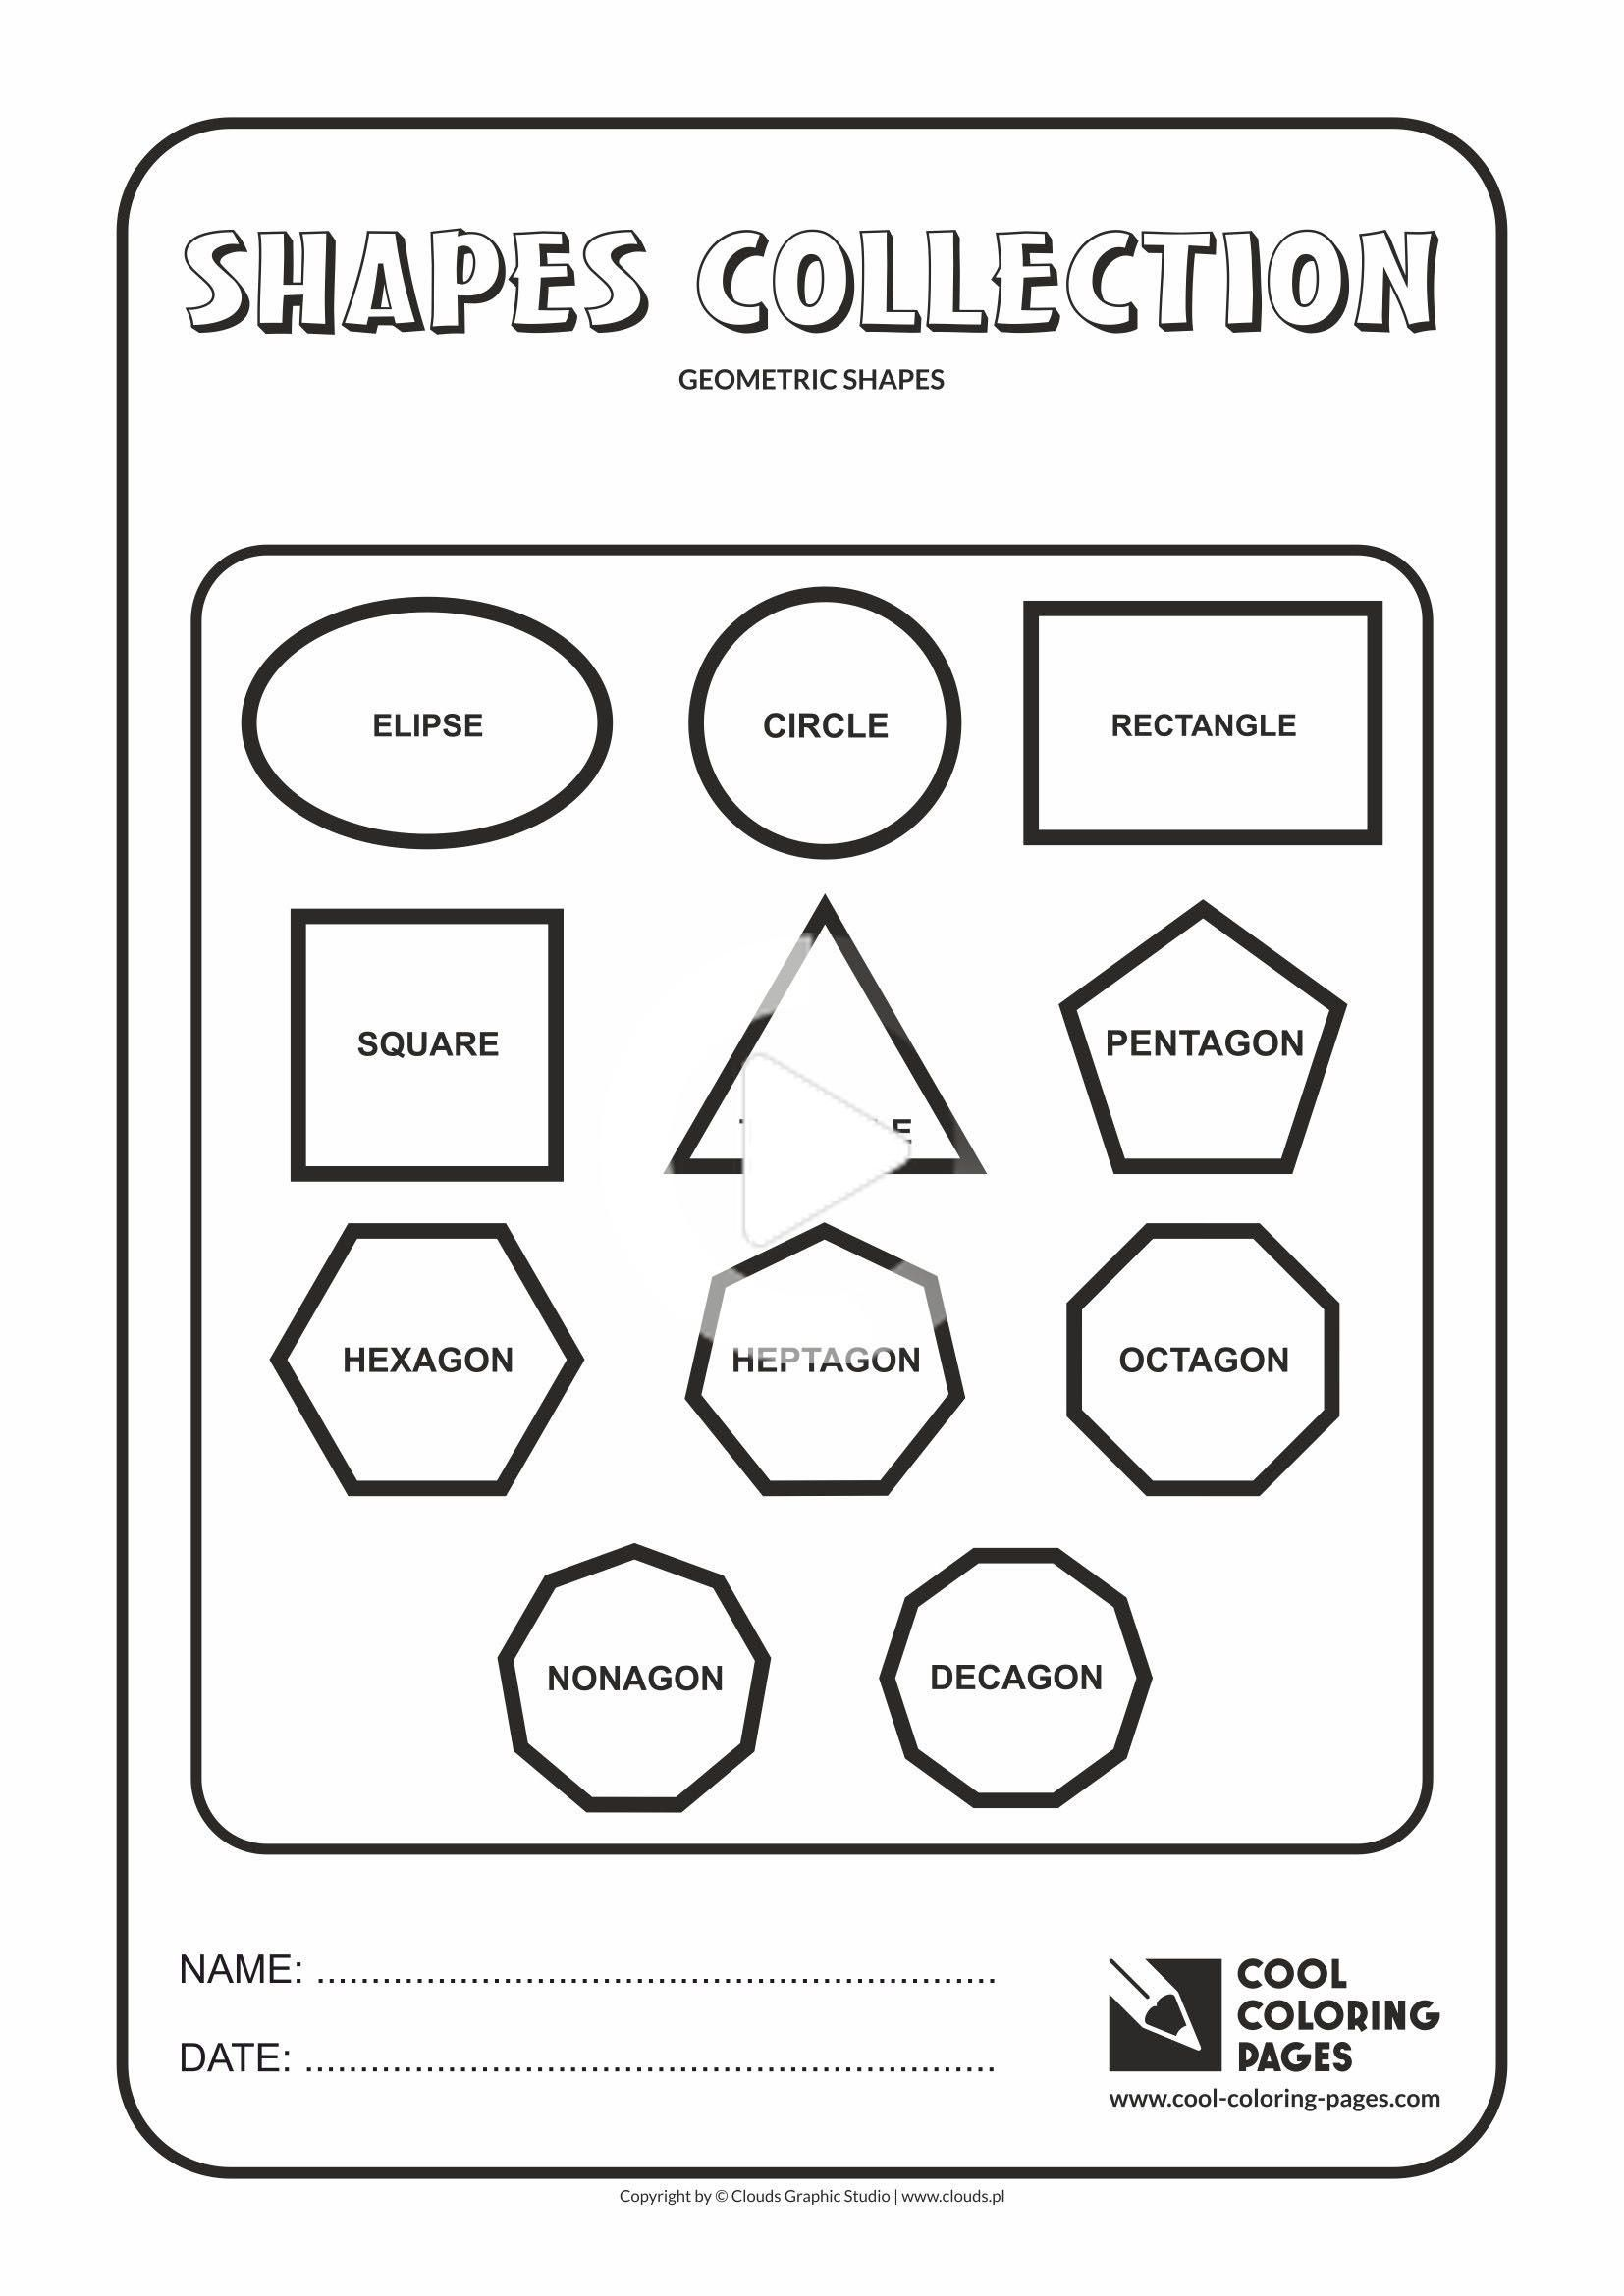 Cool Coloring Pages Geometric Shapes Cool Coloring Pages Free Educational Coloring Pages And Shape Coloring Pages Color Activities Geometric Shapes Names [ 2339 x 1654 Pixel ]